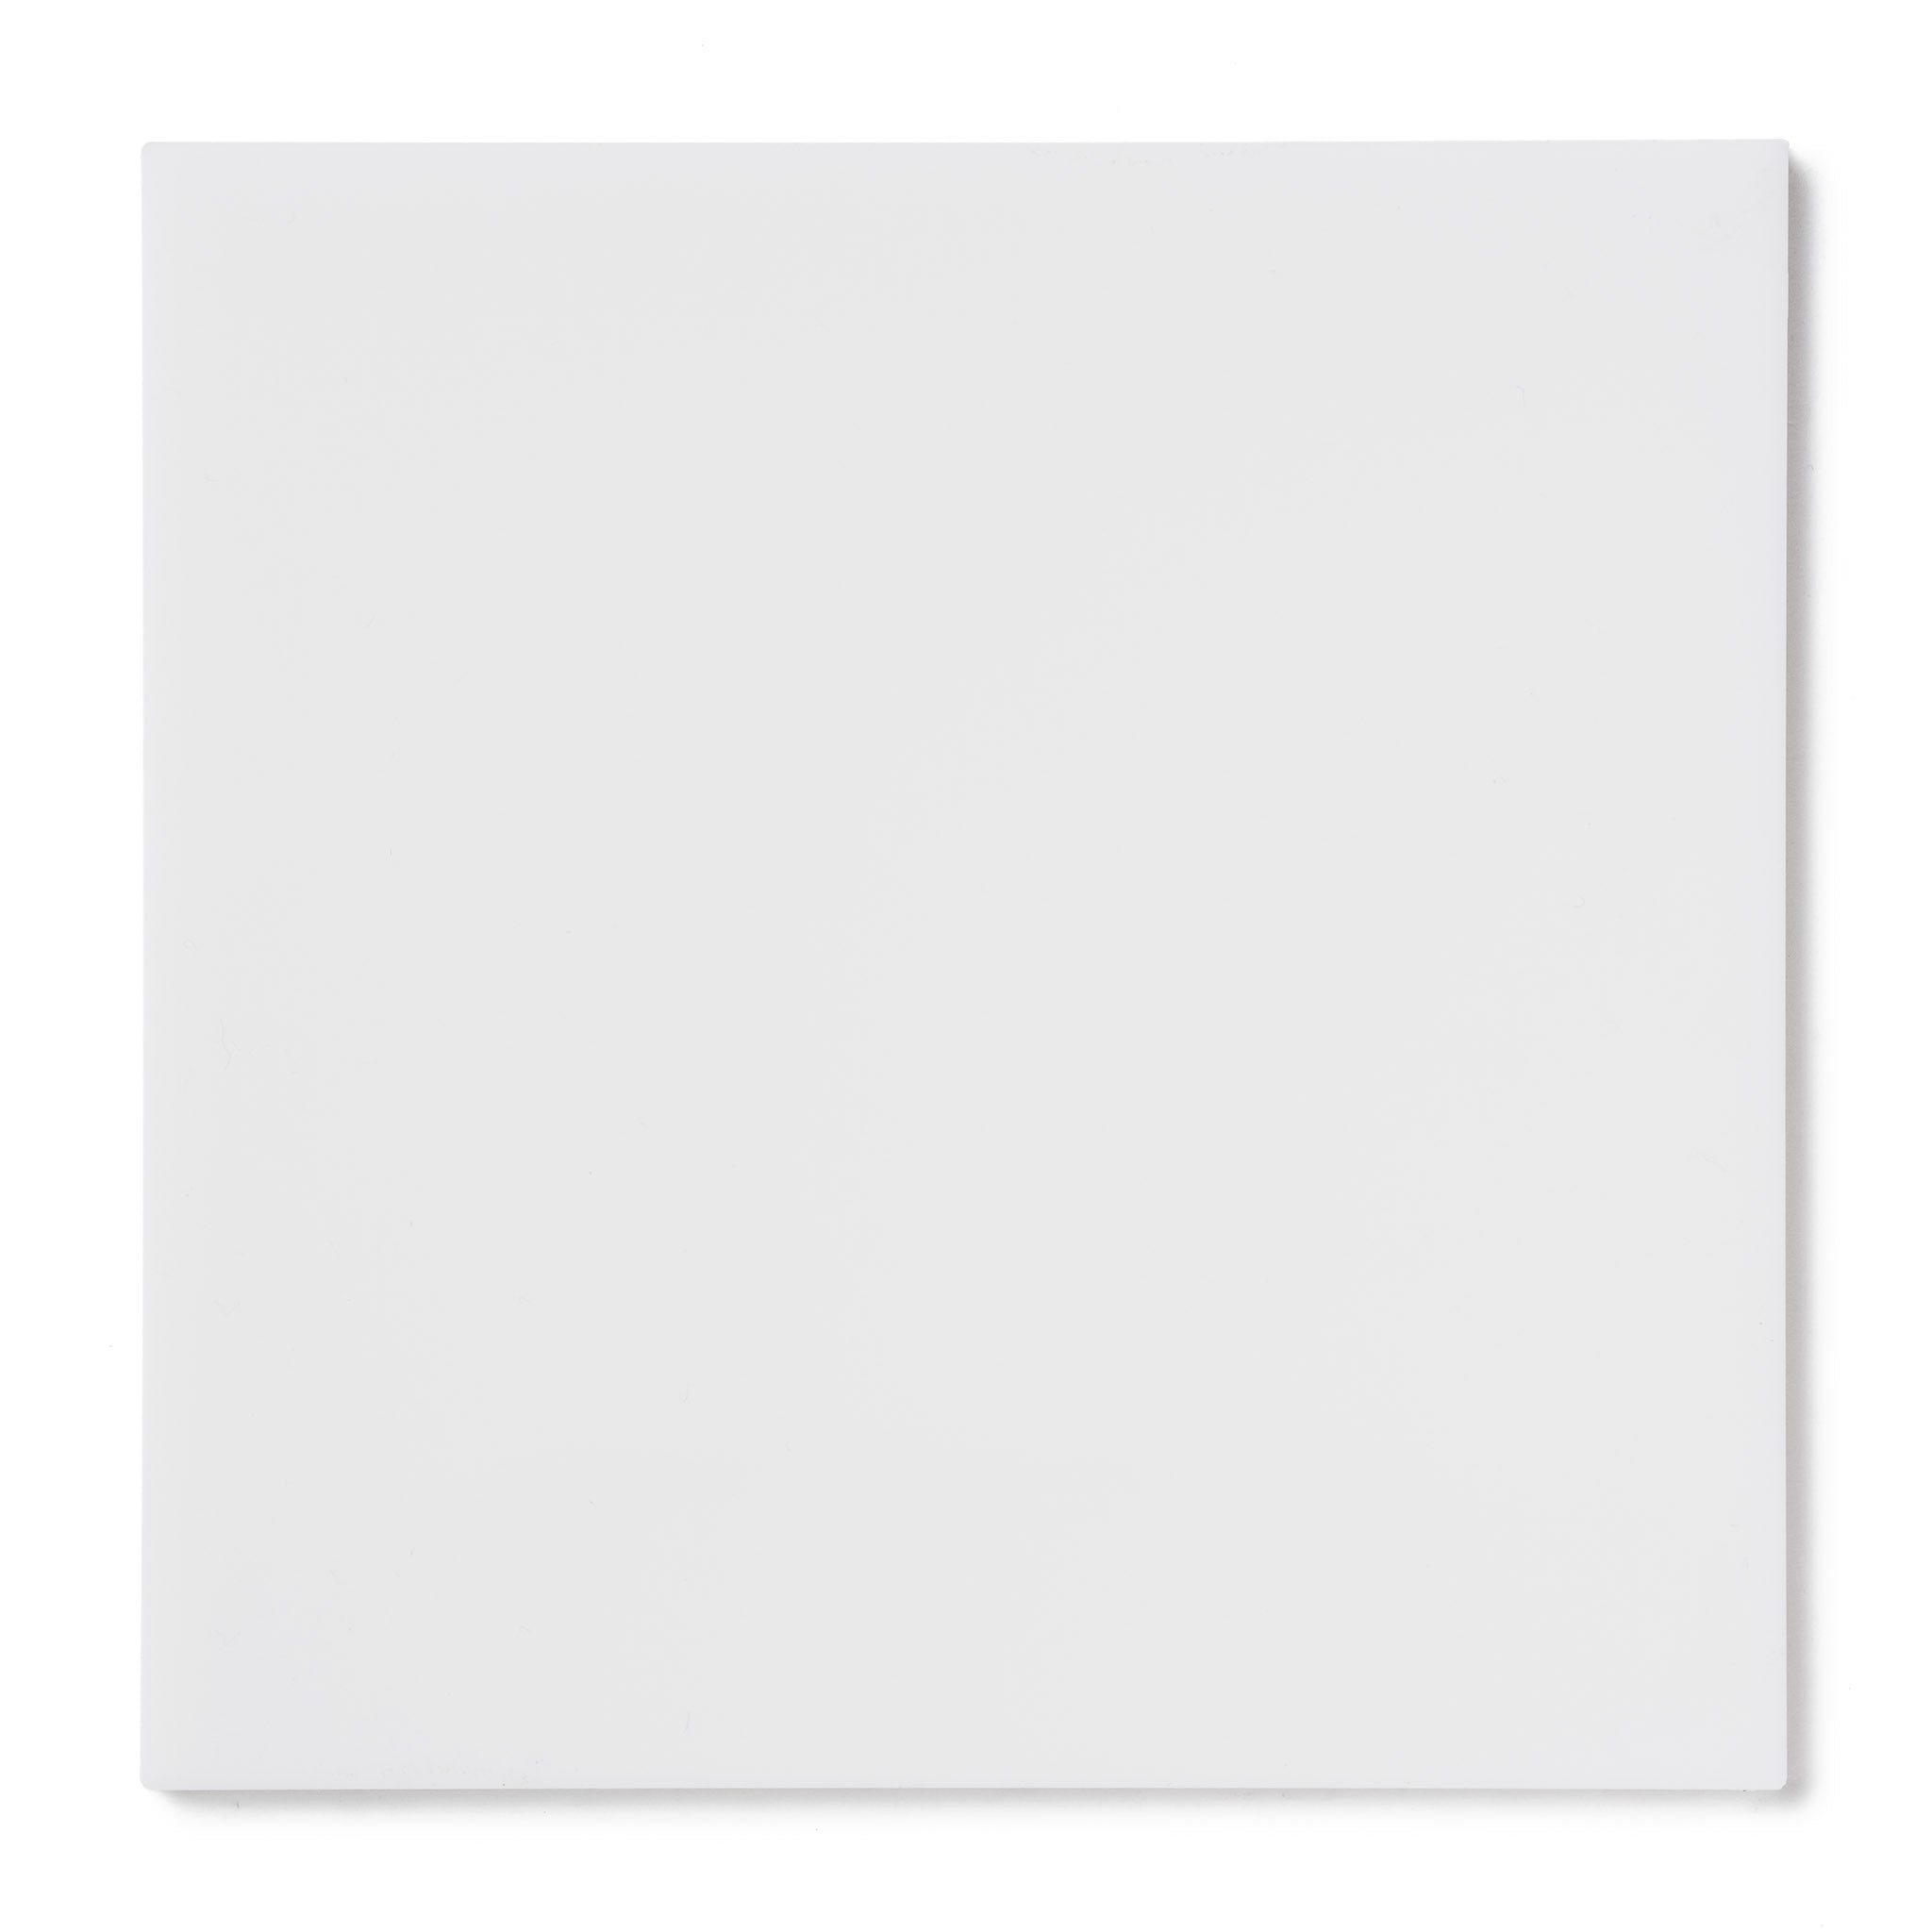 White Opaque Acrylic Plexiglass Sheet, color 7508